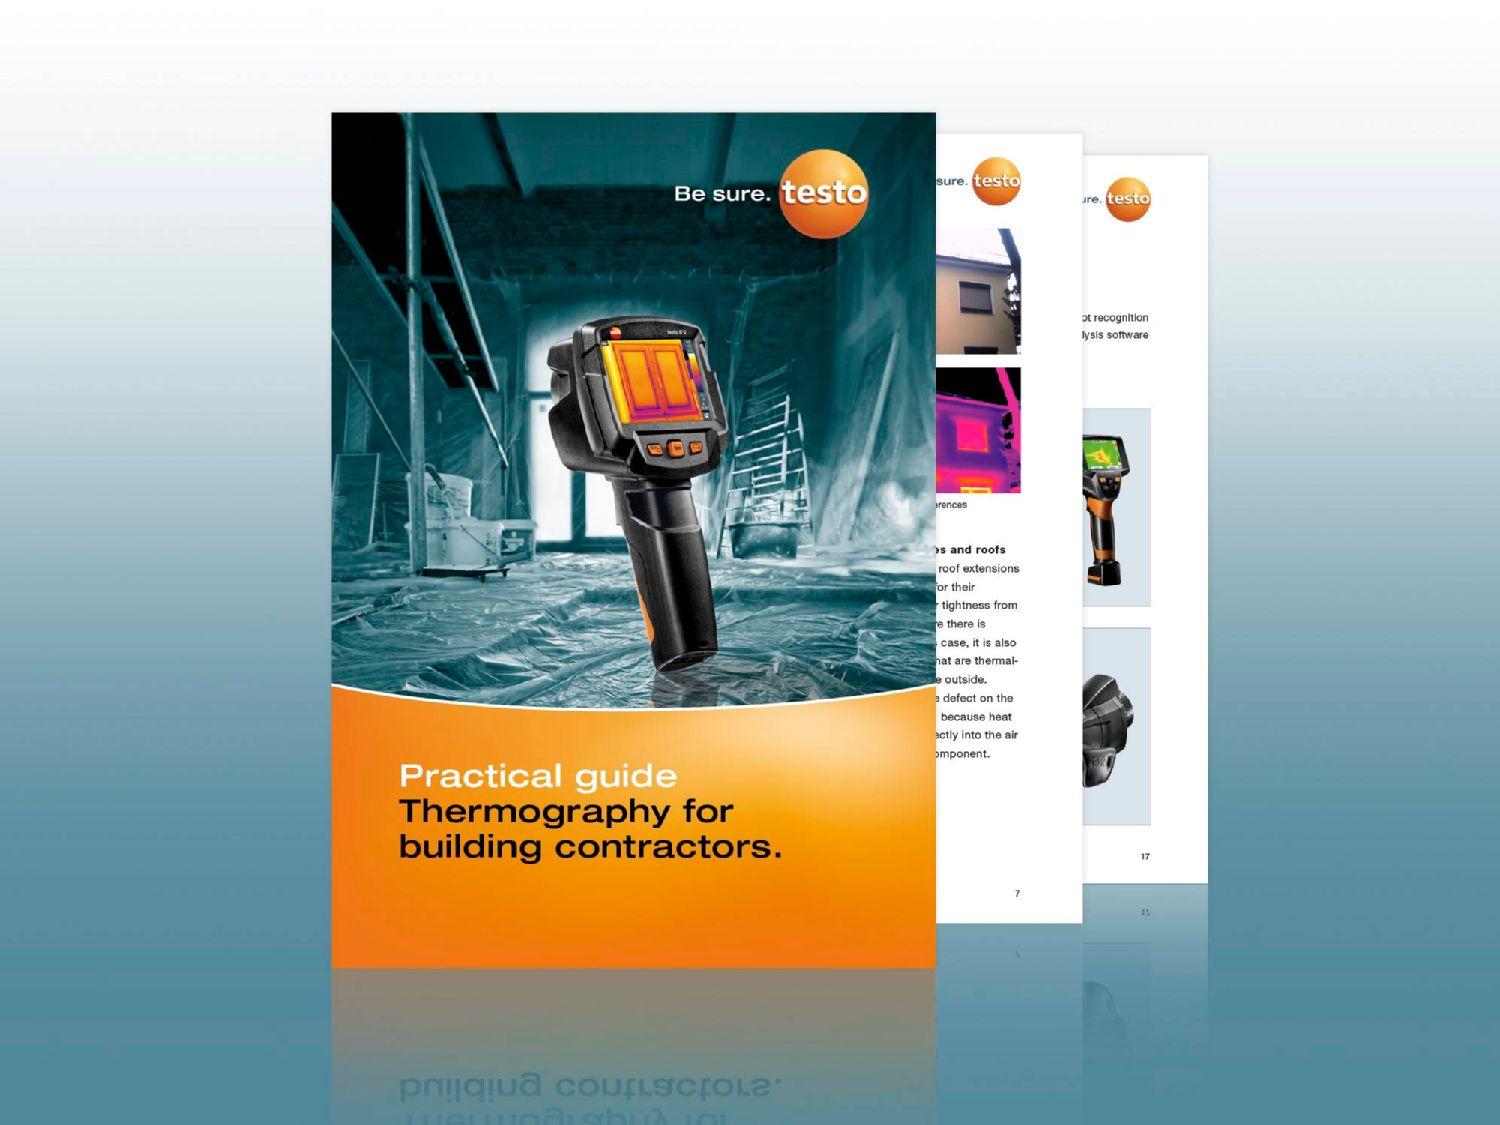 Practical guide for building contractors